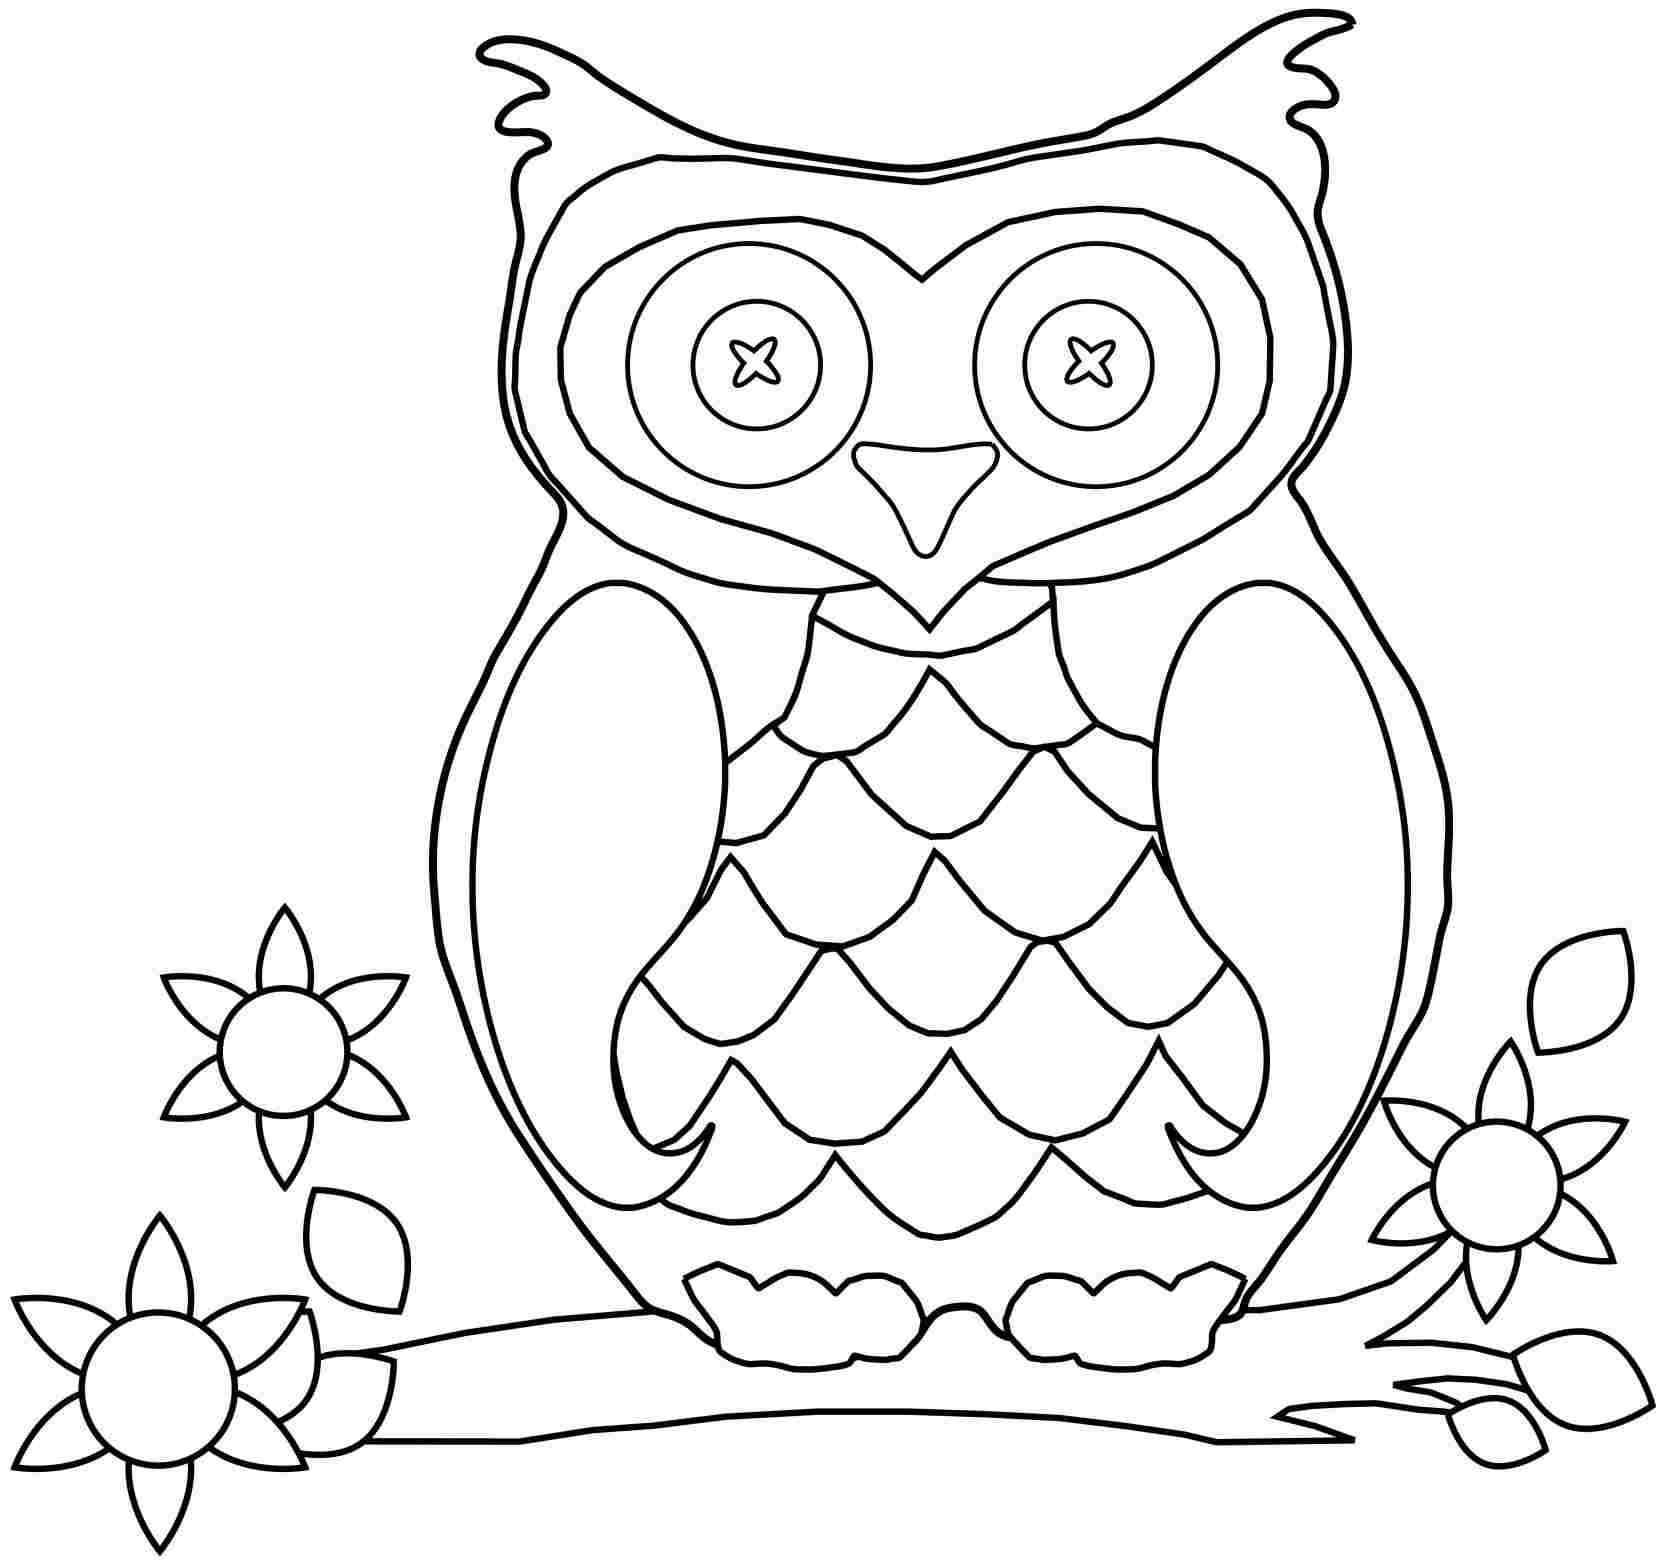 owl printable coloring pages 10 difficult owl coloring page for adults owl pages printable coloring